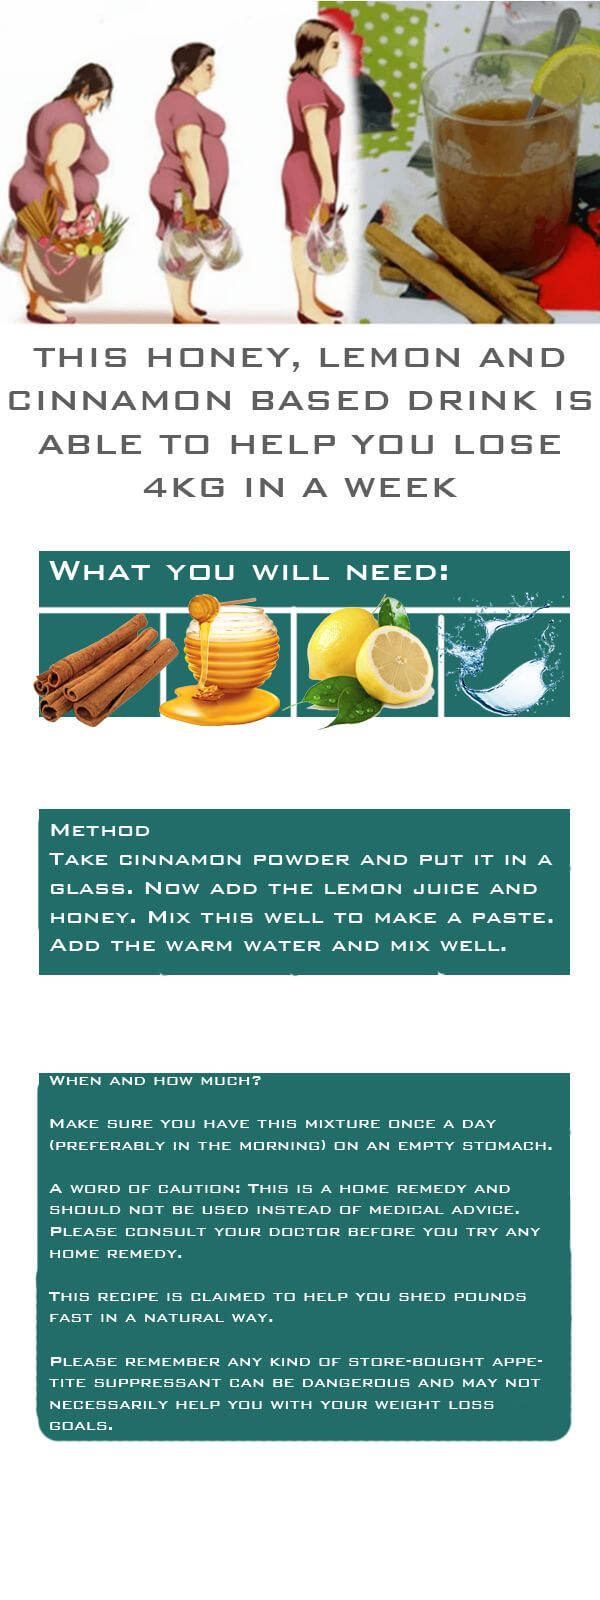 If you want to lose weight but haven't found any success, this remedy is for you — honey, lemon and cinnamon mix. How it works: Honey, lemon and warm water are known to help improve digestion, cleanse your body of toxins and aid in weight loss. This is largely due to the pectin present in lemons Continue Reading